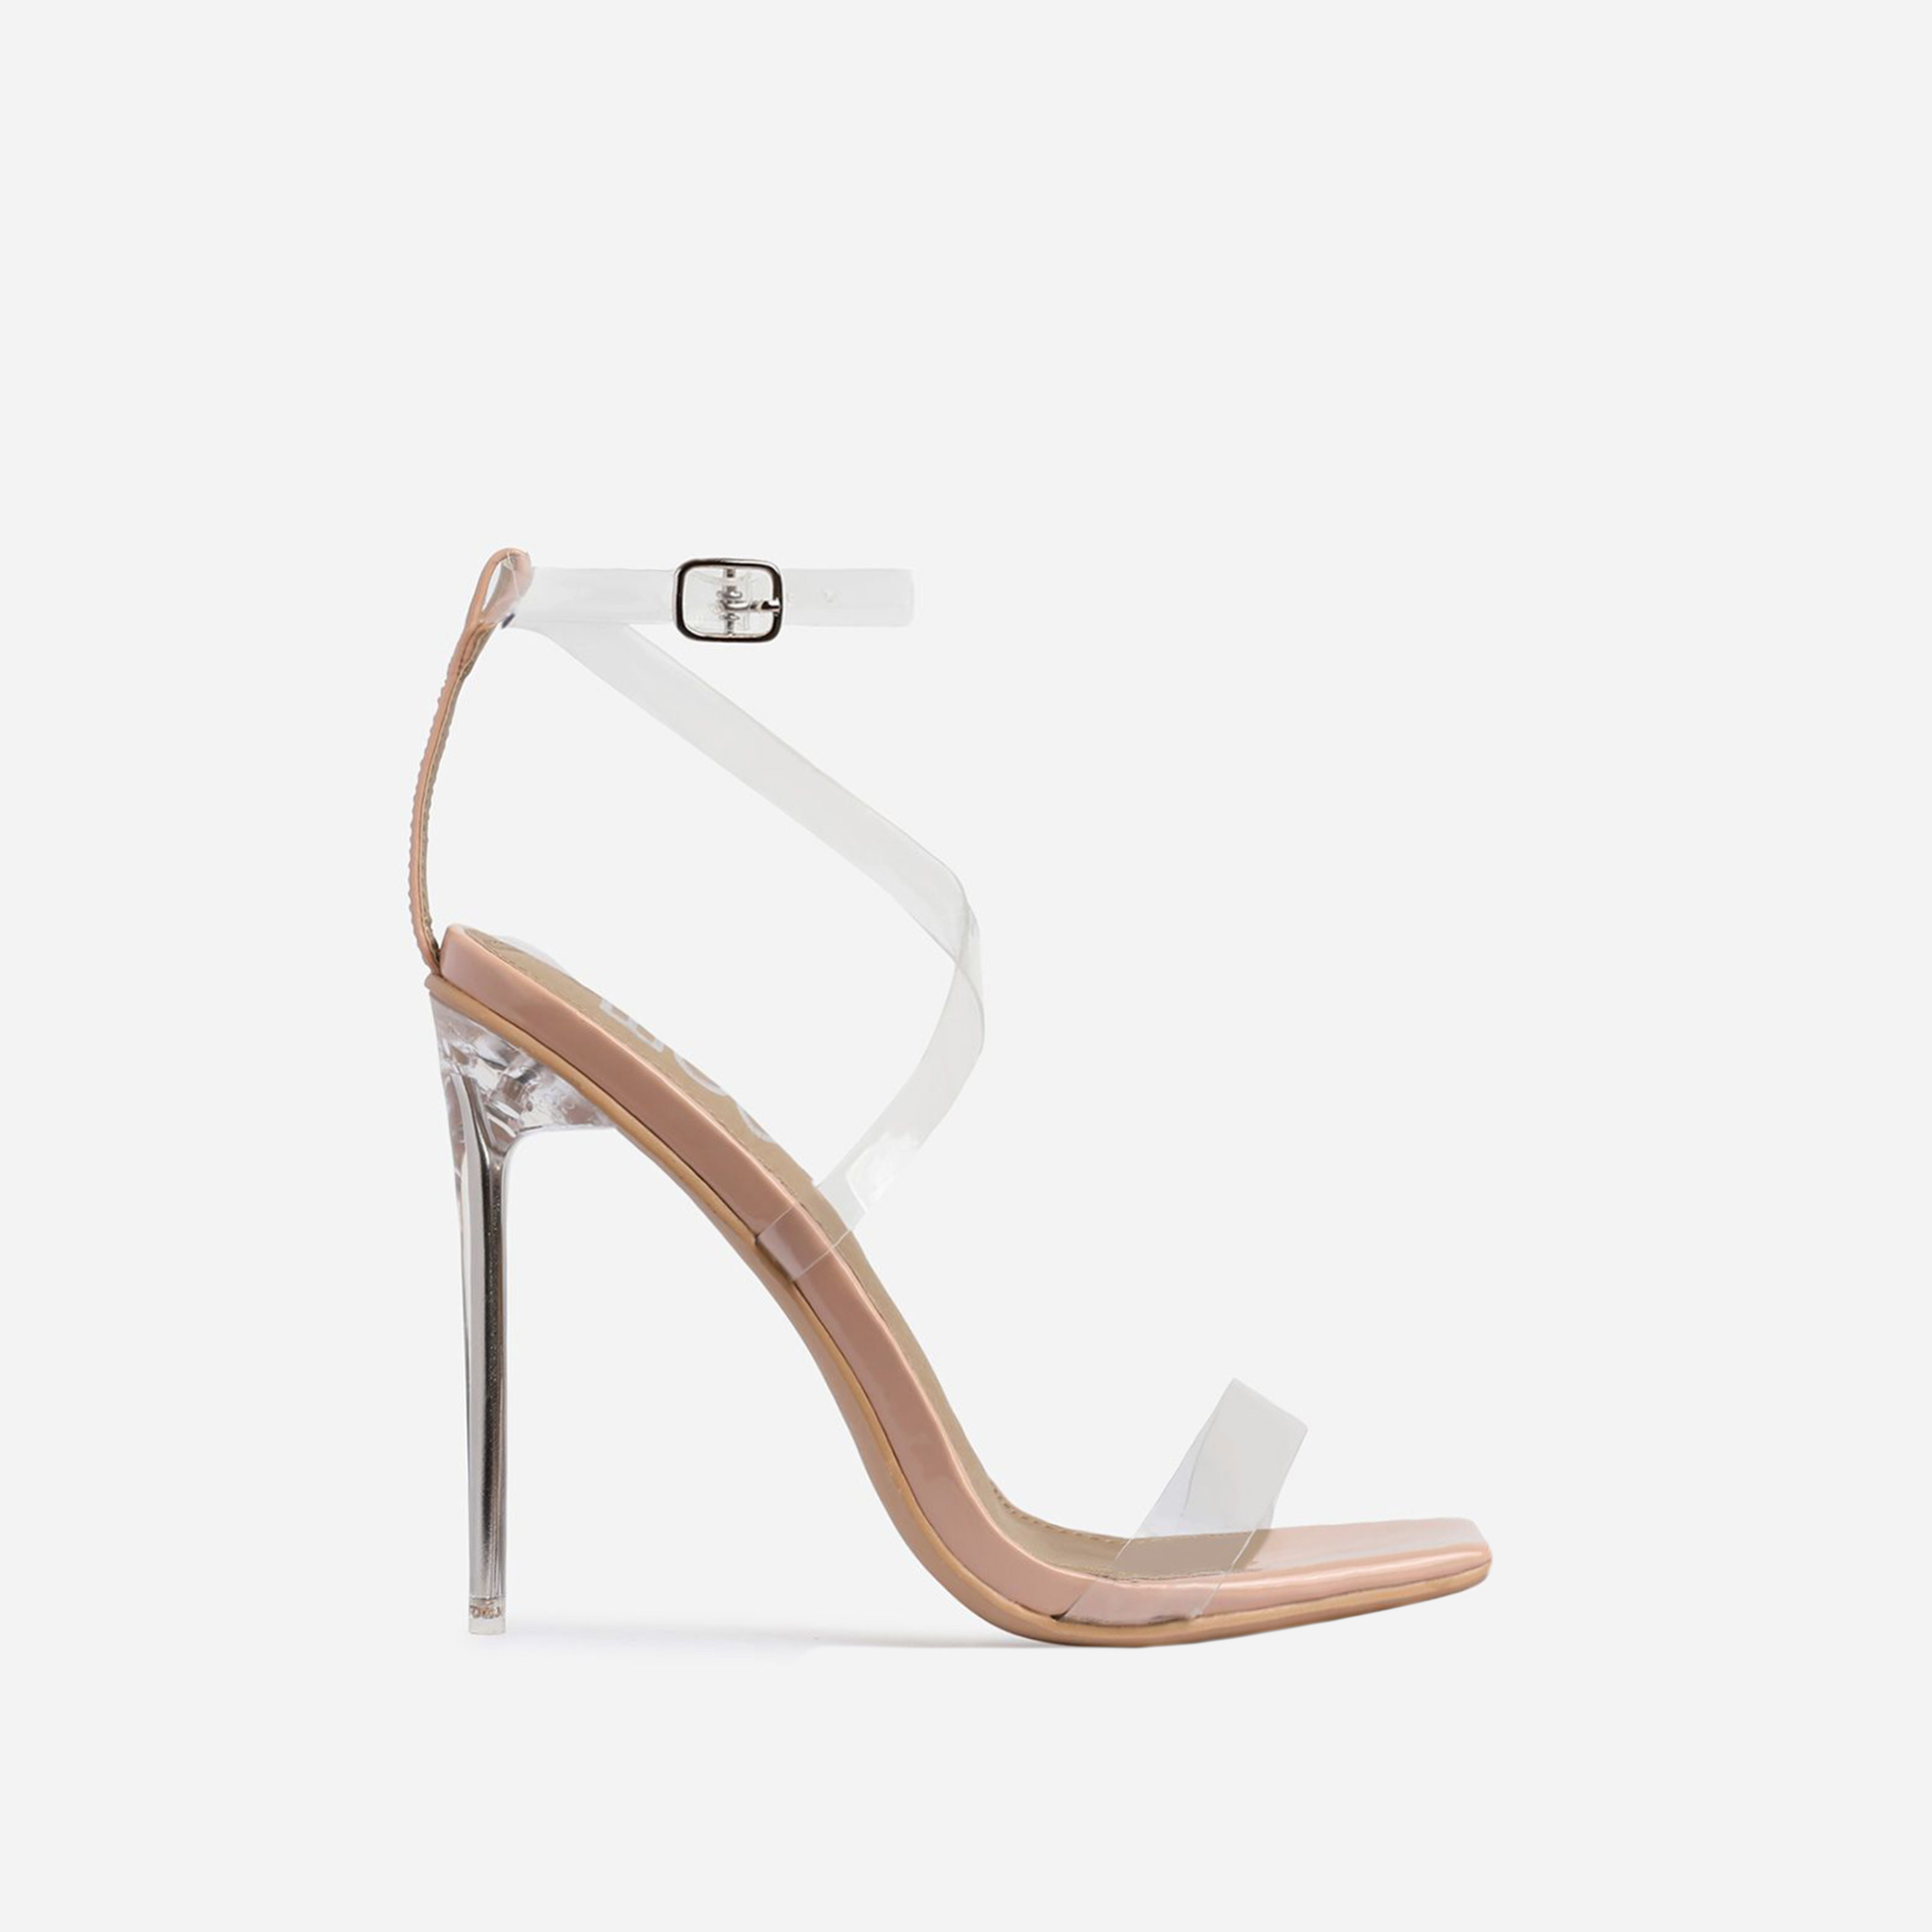 Lance Square Toe Barely There Clear Perspex Heel In Nude Patent